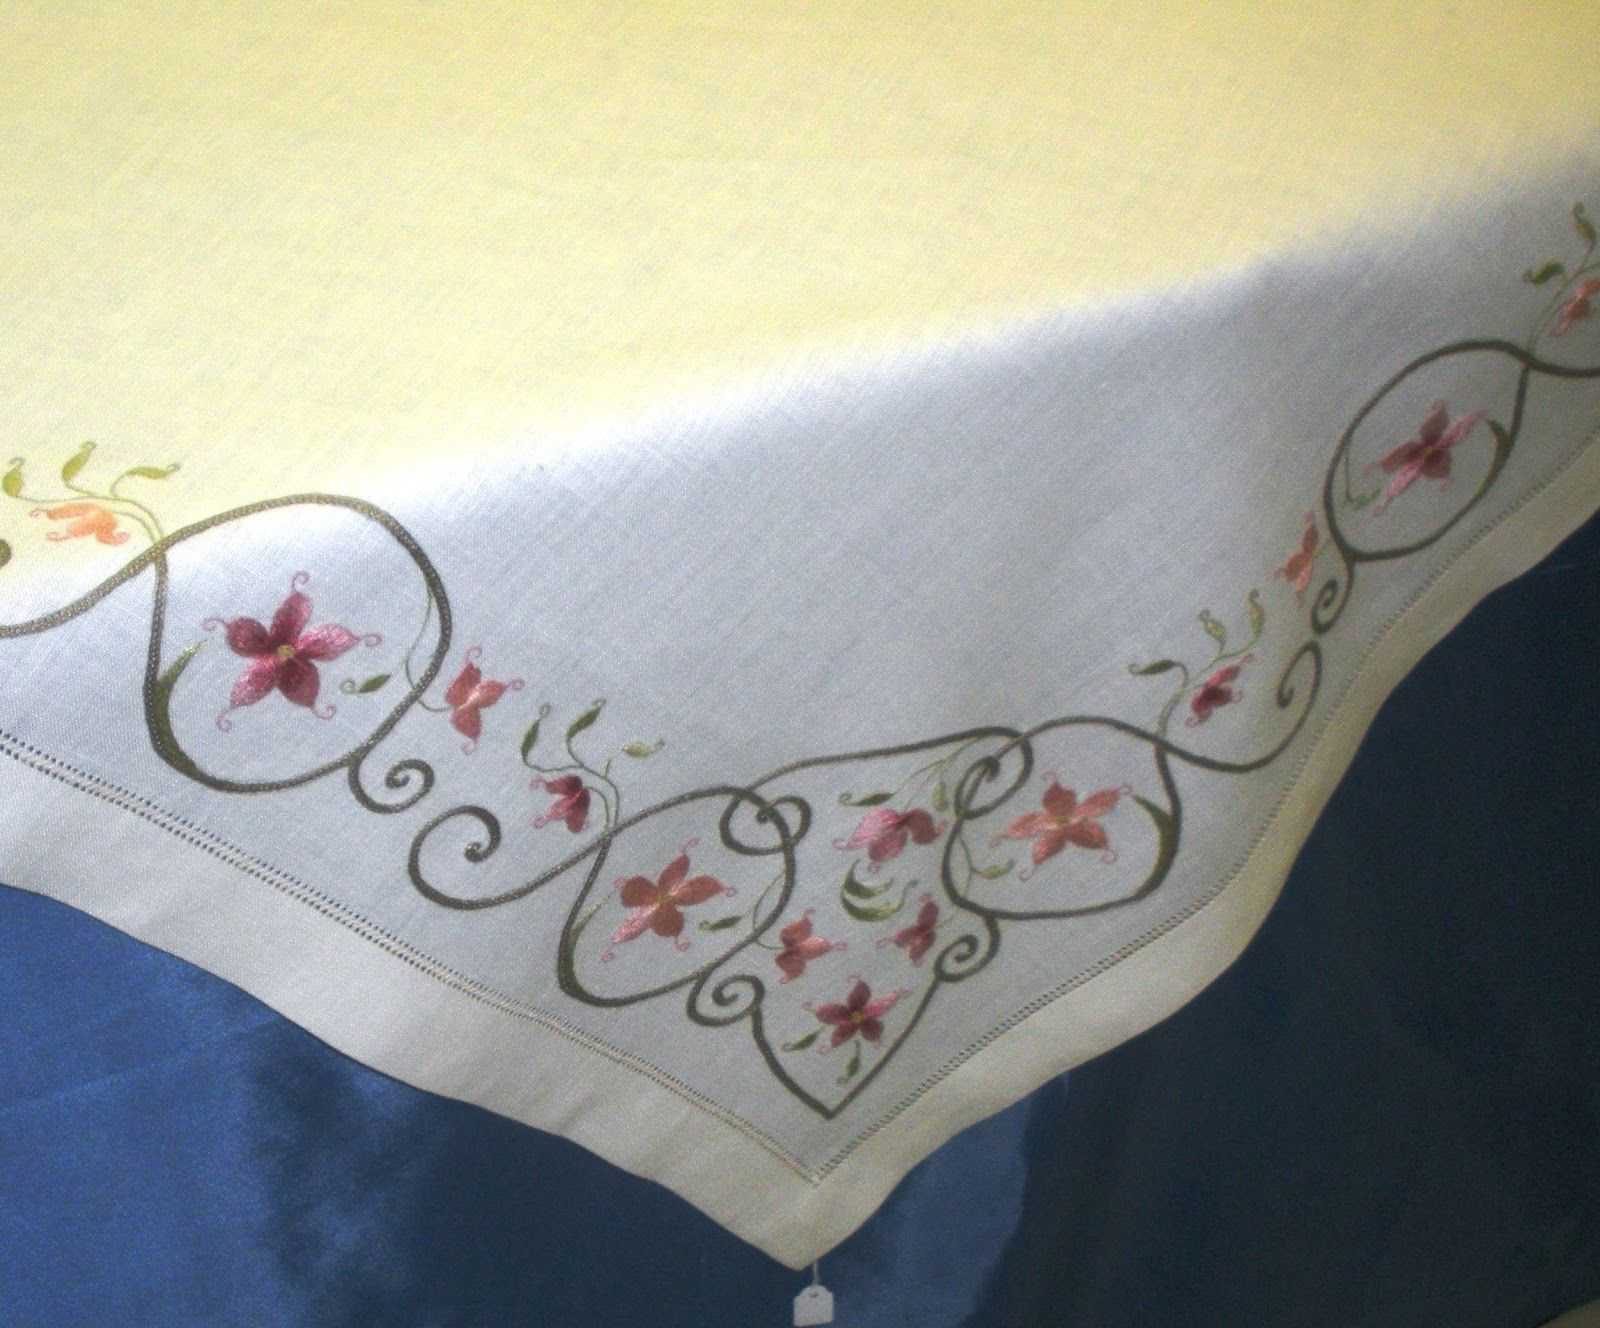 Ricamo, embroidery, broderie, bordado,.....